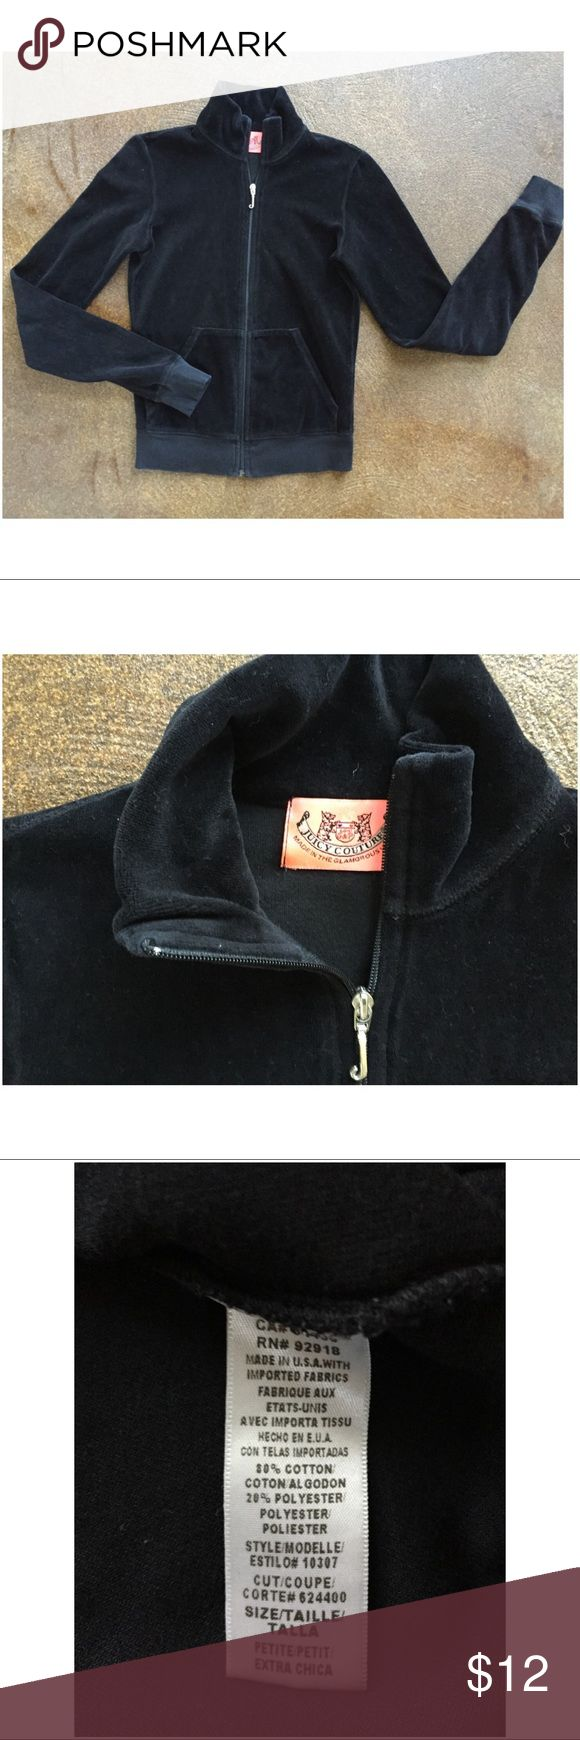 JUICY COUTURE Velour Jacket PETITE XS Black velour Juicy Couture zip up jacket. Has no hood. This jacket is labeled as PETITE XS. It is tiny! It could actually fit a child size 12 or 14.  Please ask questions prior to purchase.  Perfect condition. Juicy Couture Other